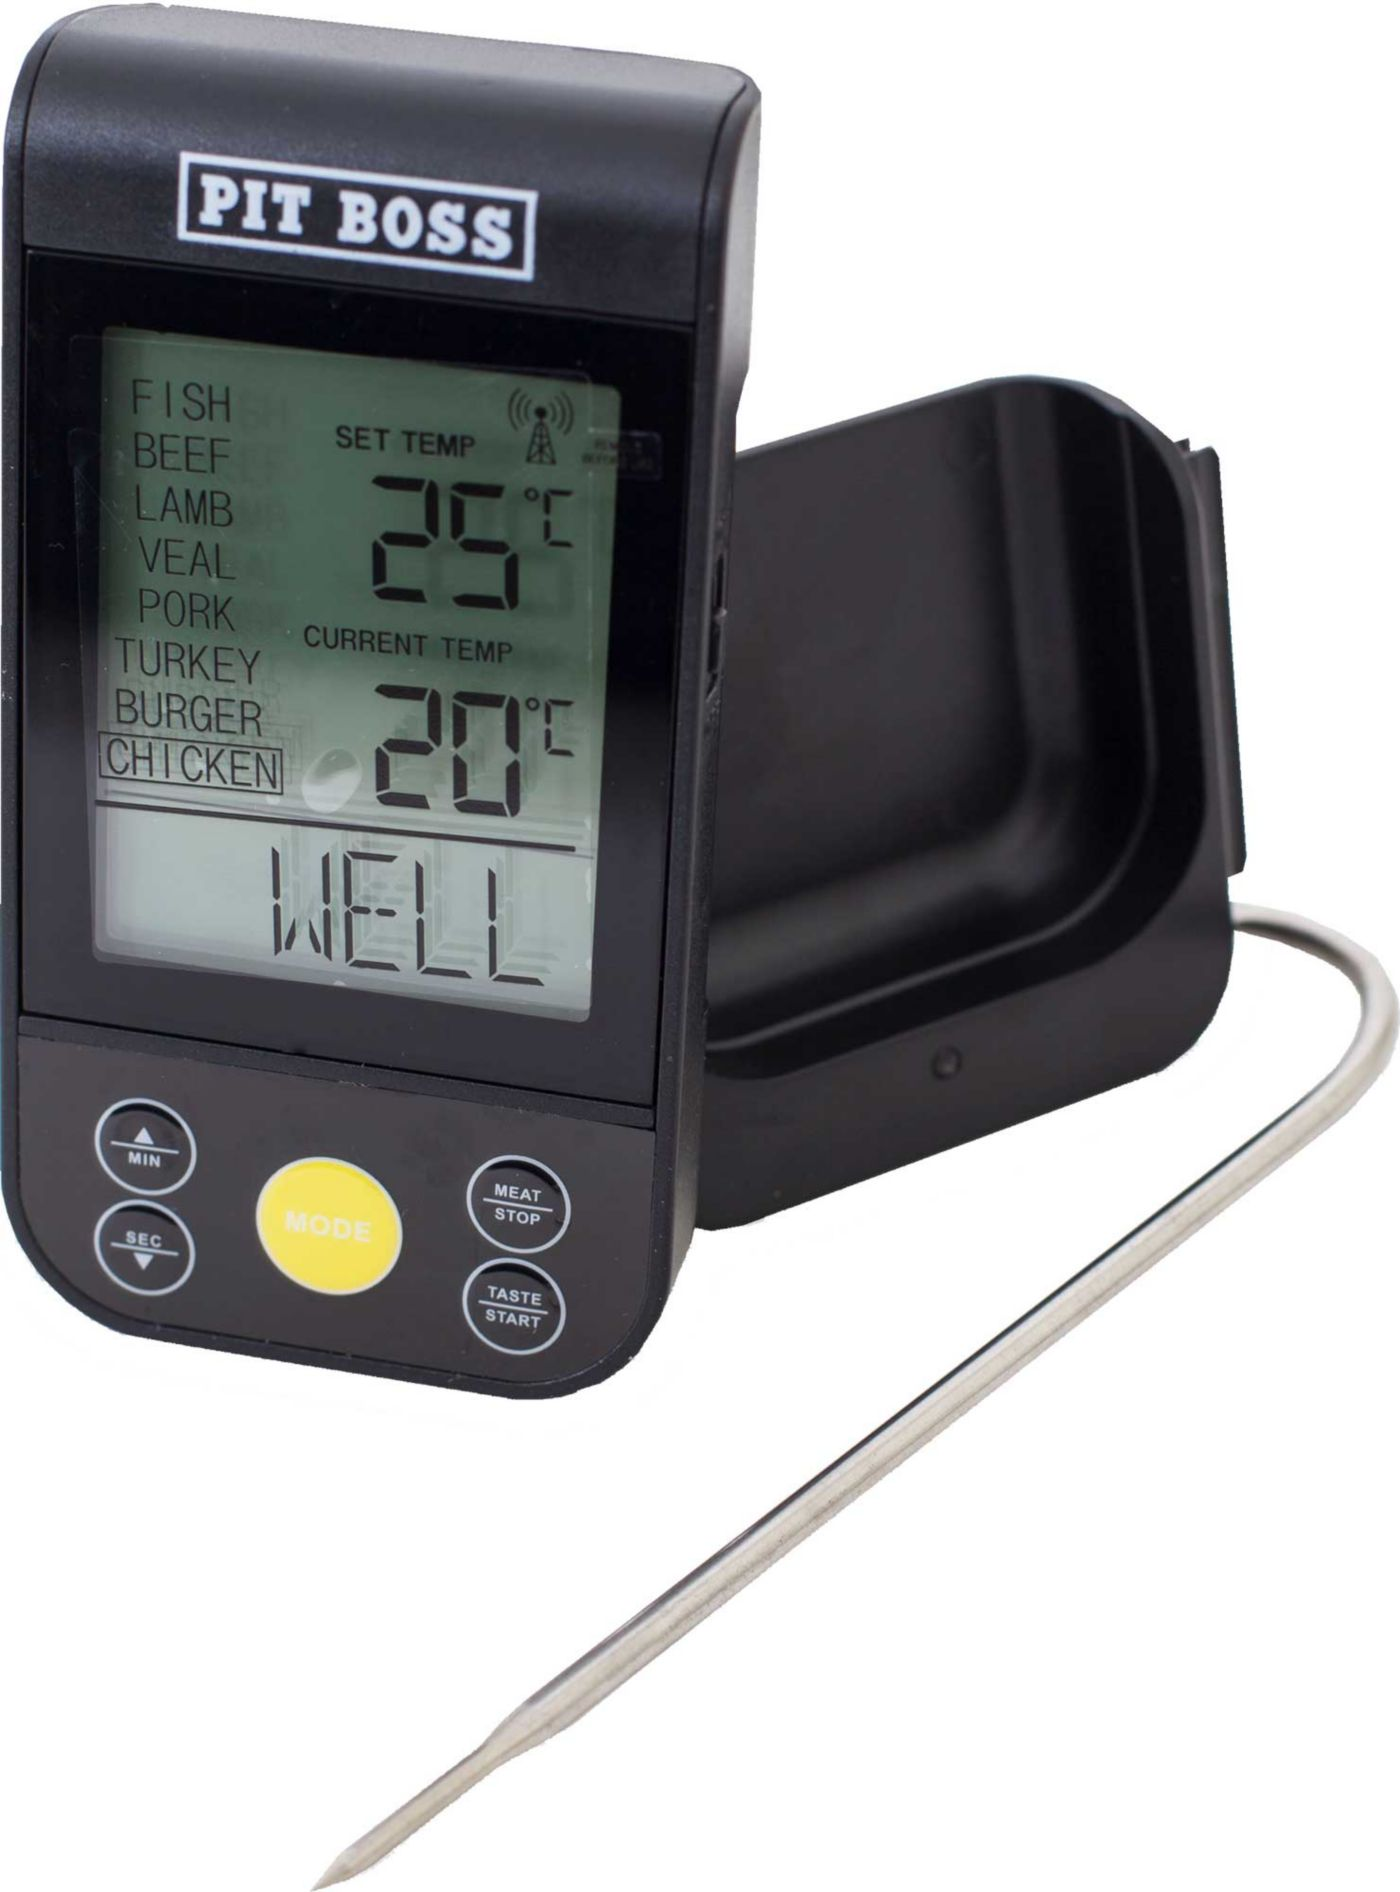 Pit Boss Grill Thermometer